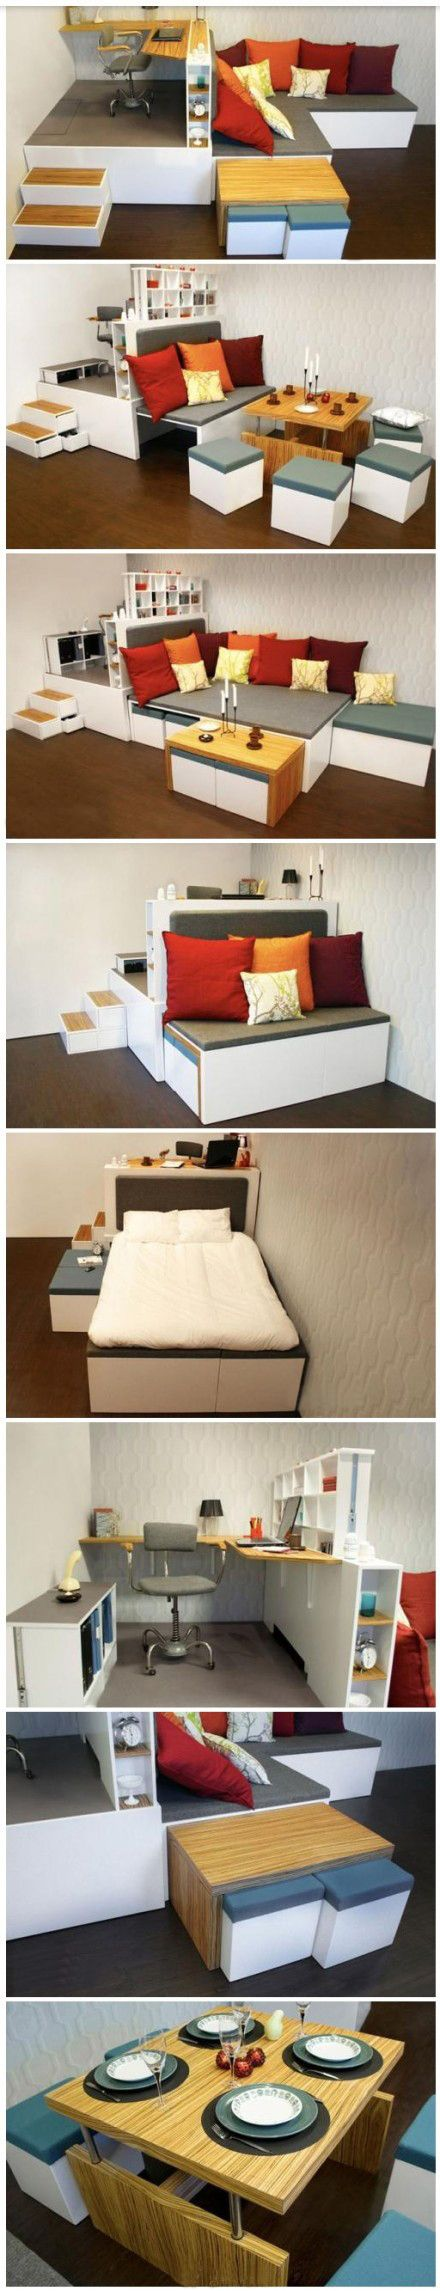 Multifunction furniture inspiring for my home daycare space